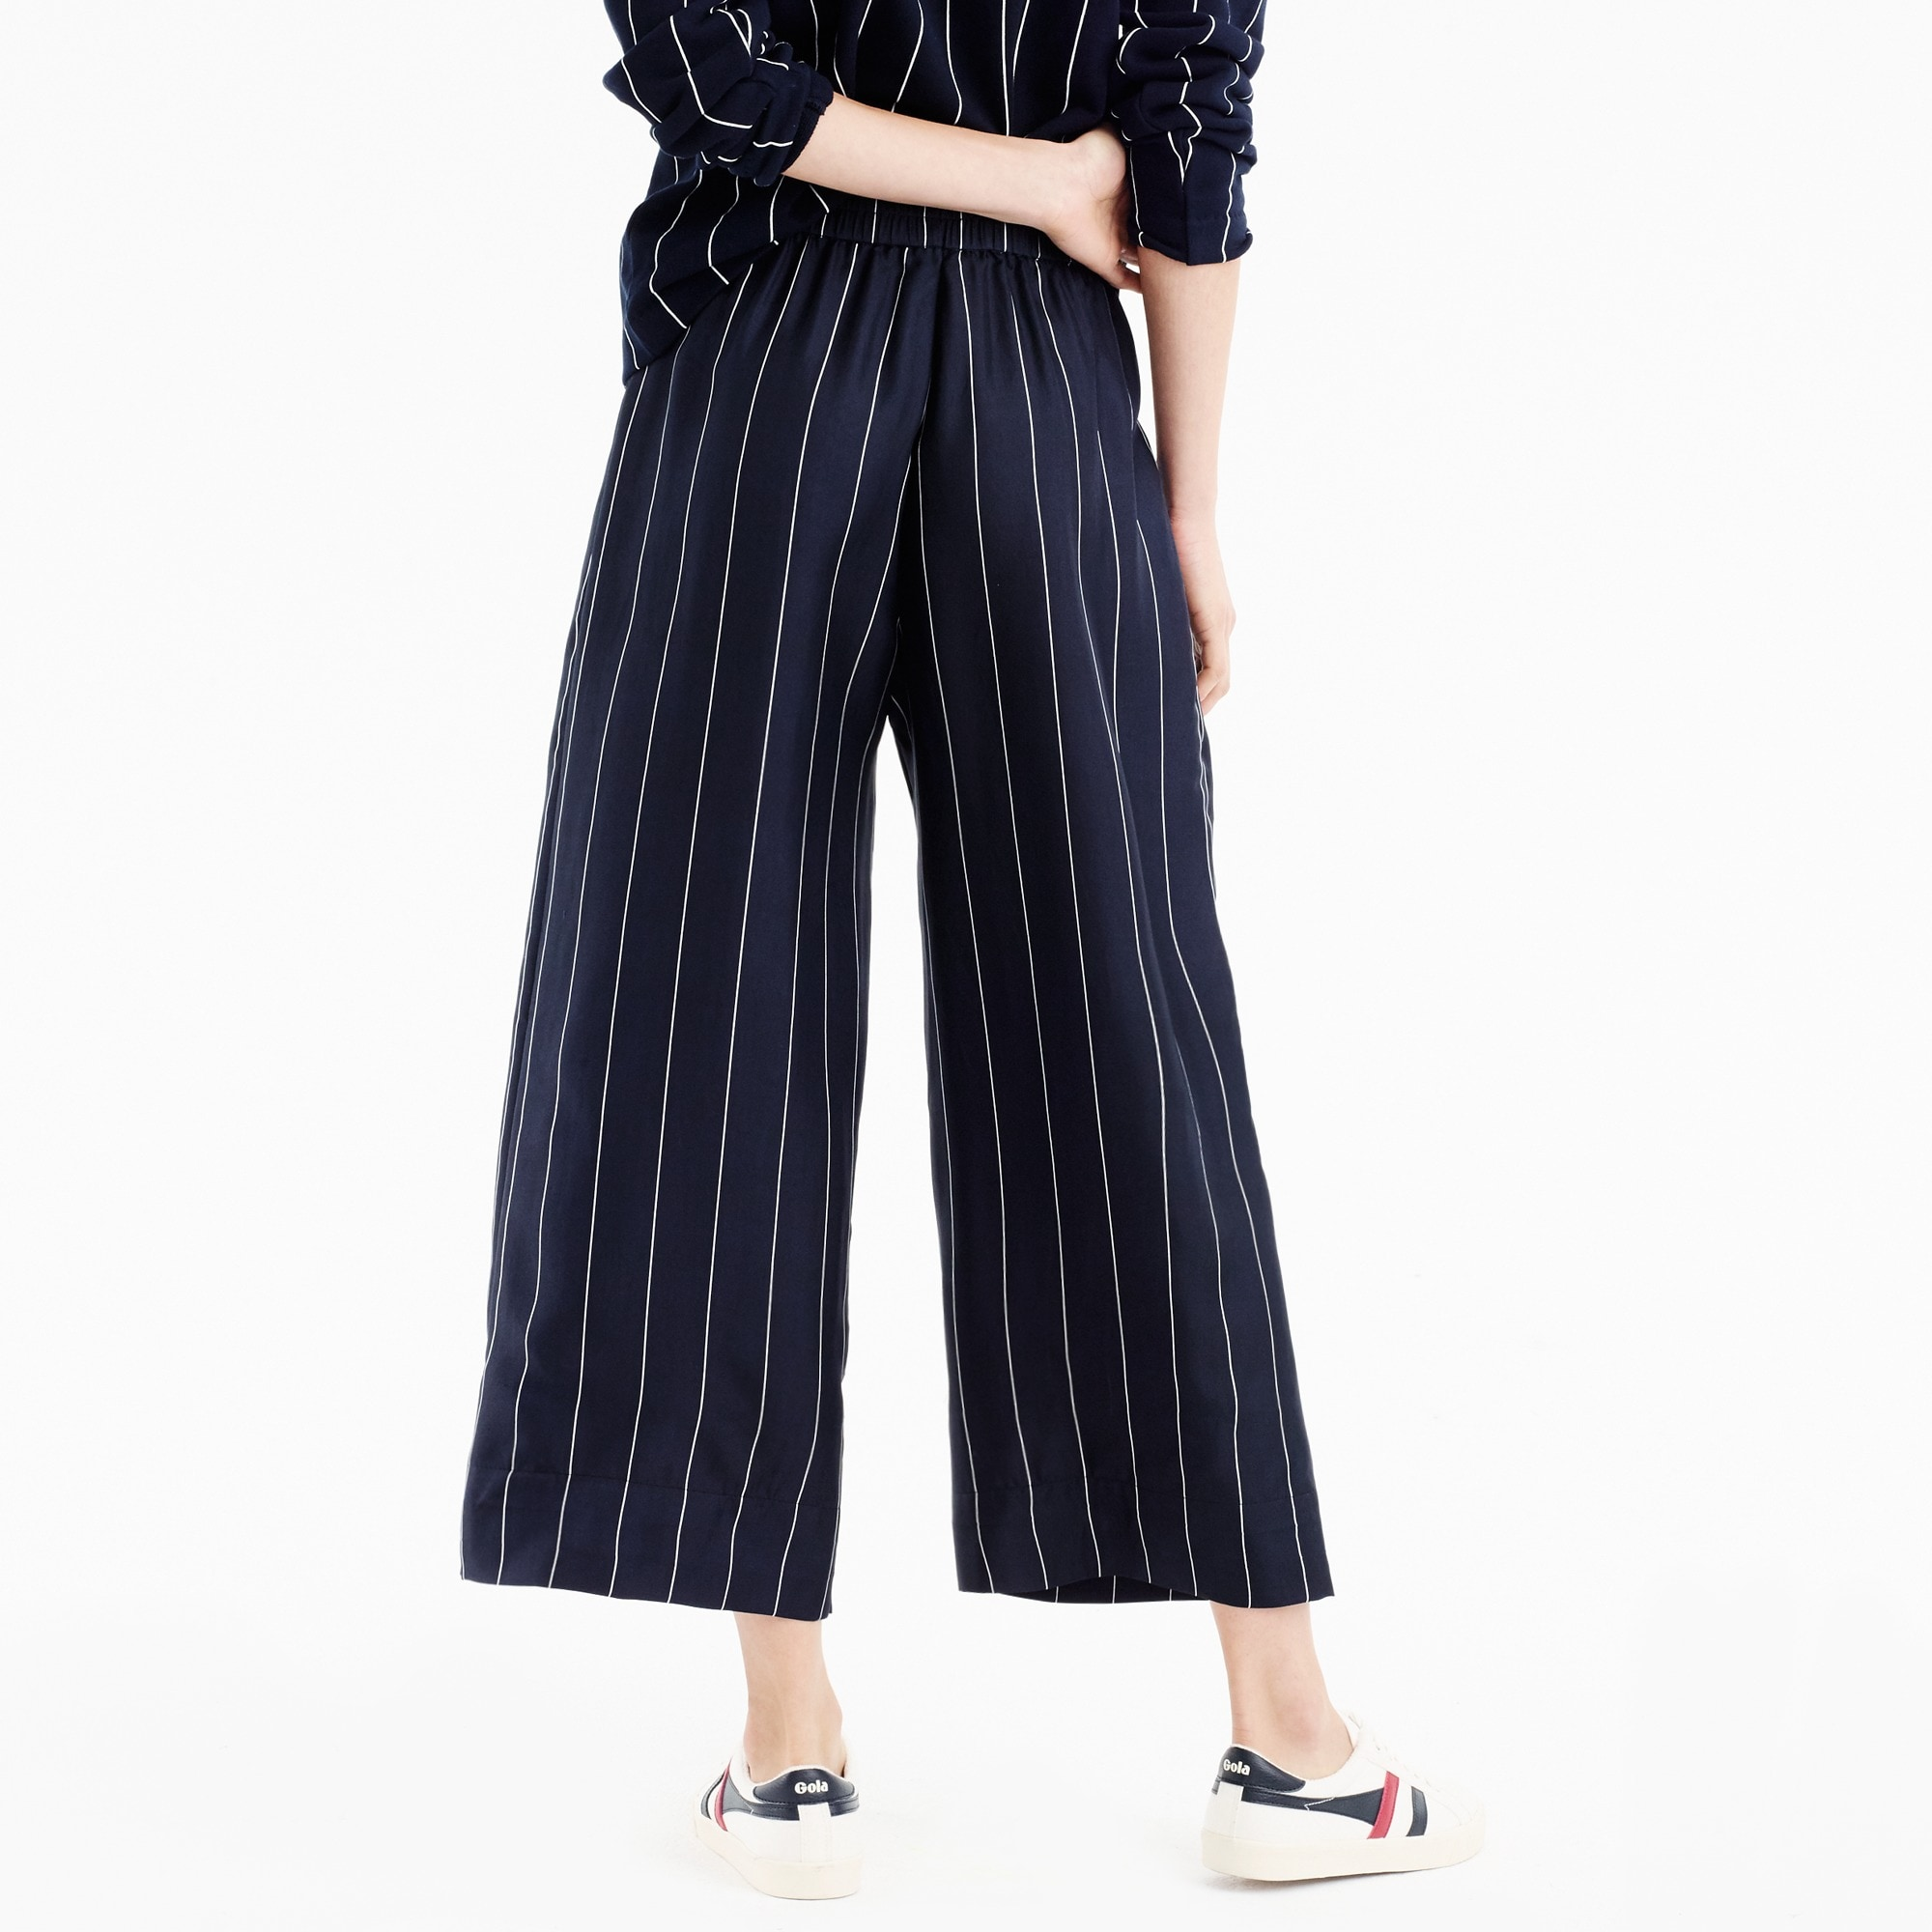 Image 4 for Cropped silk pull-on pant in pinstripe